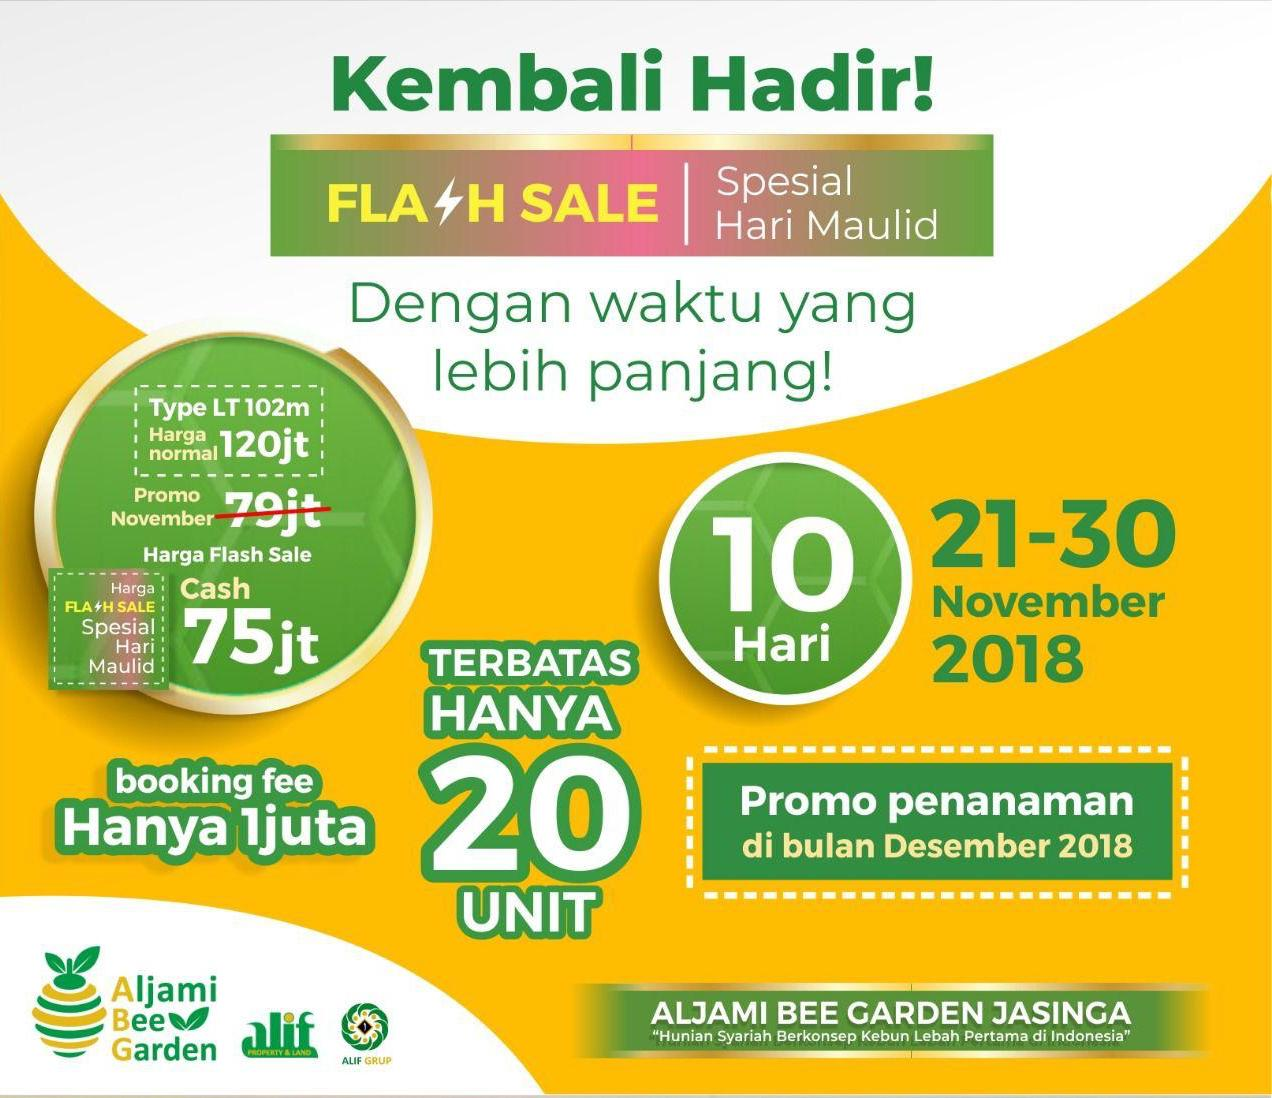 aljami bee garden jasinga flash sale